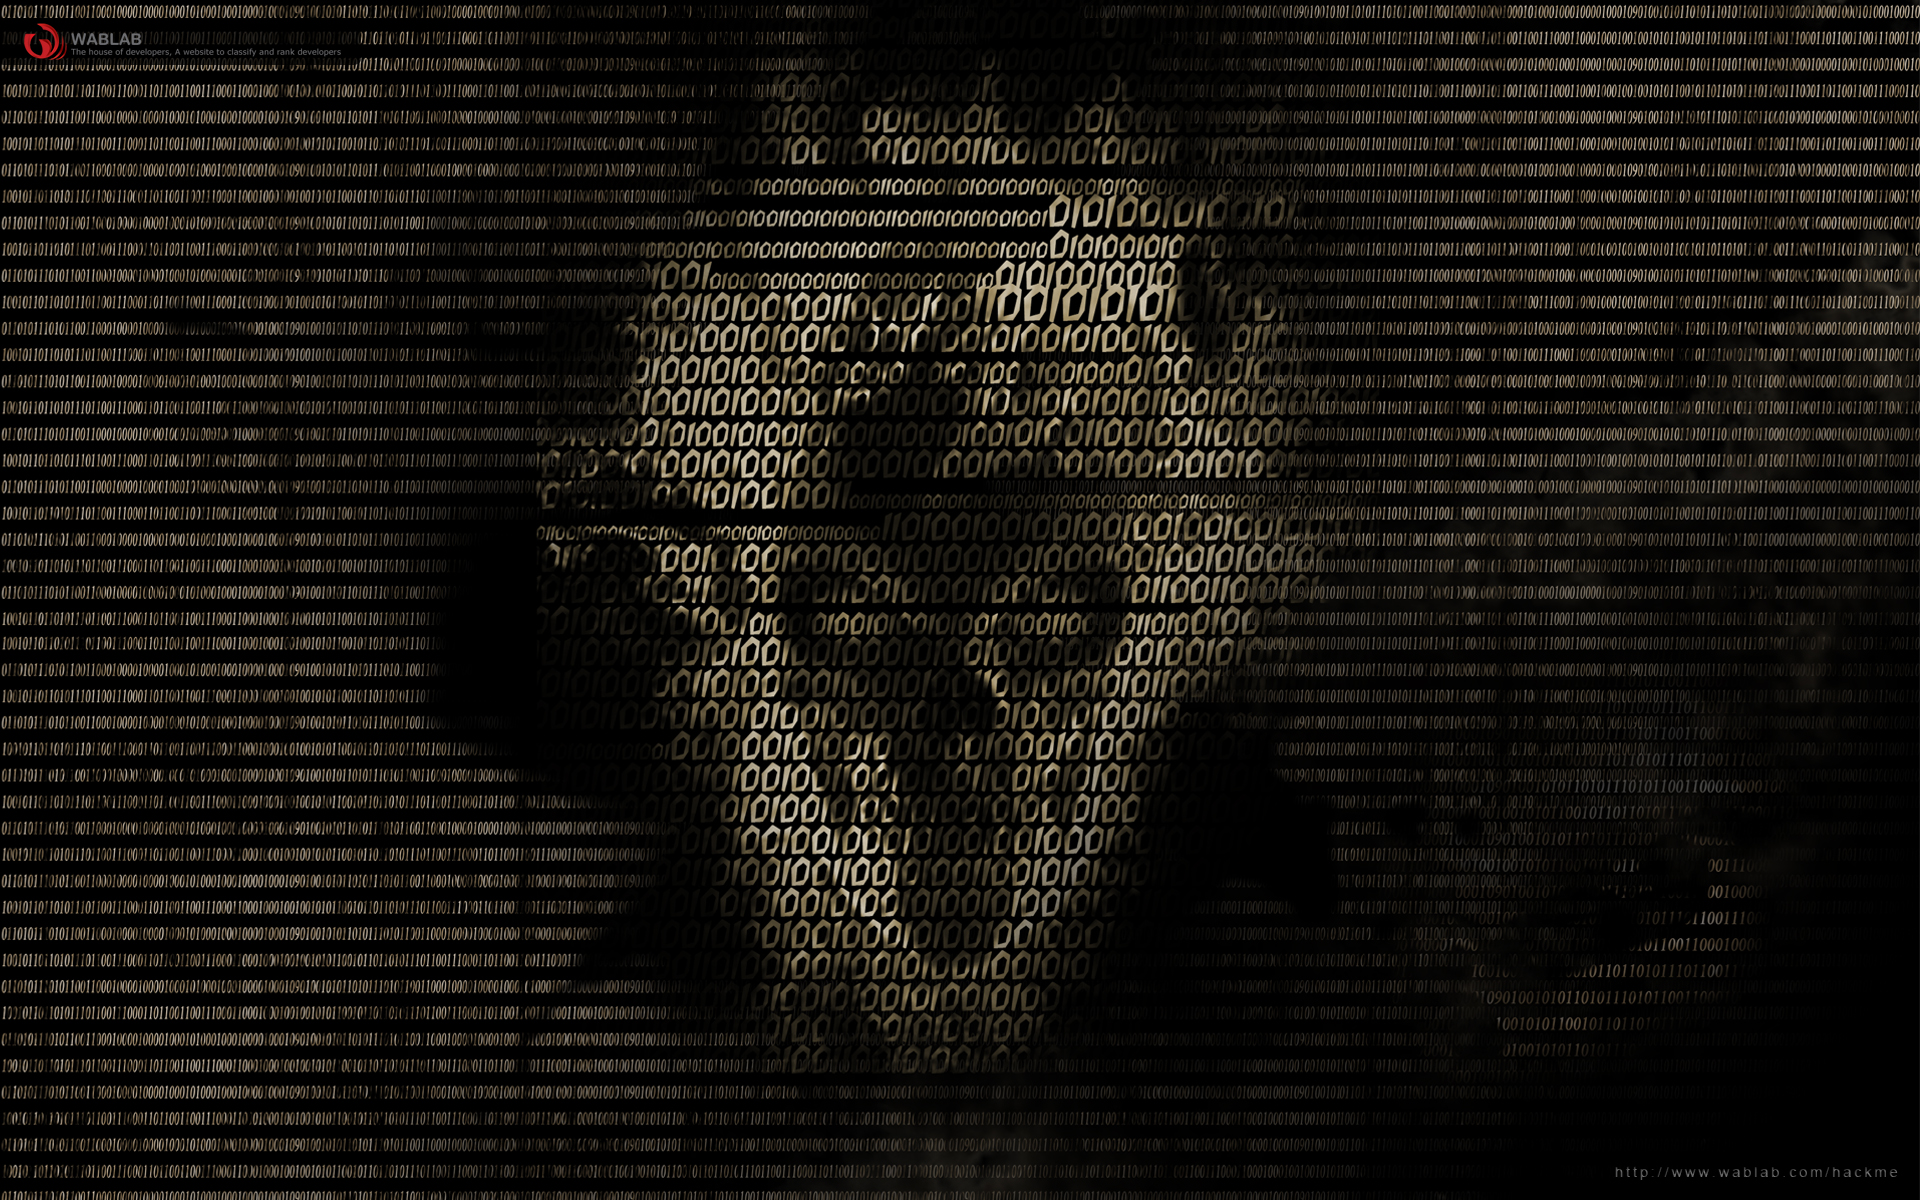 Hackers Wallpapers, 1920x1200 | Wallpapers PC Gallery